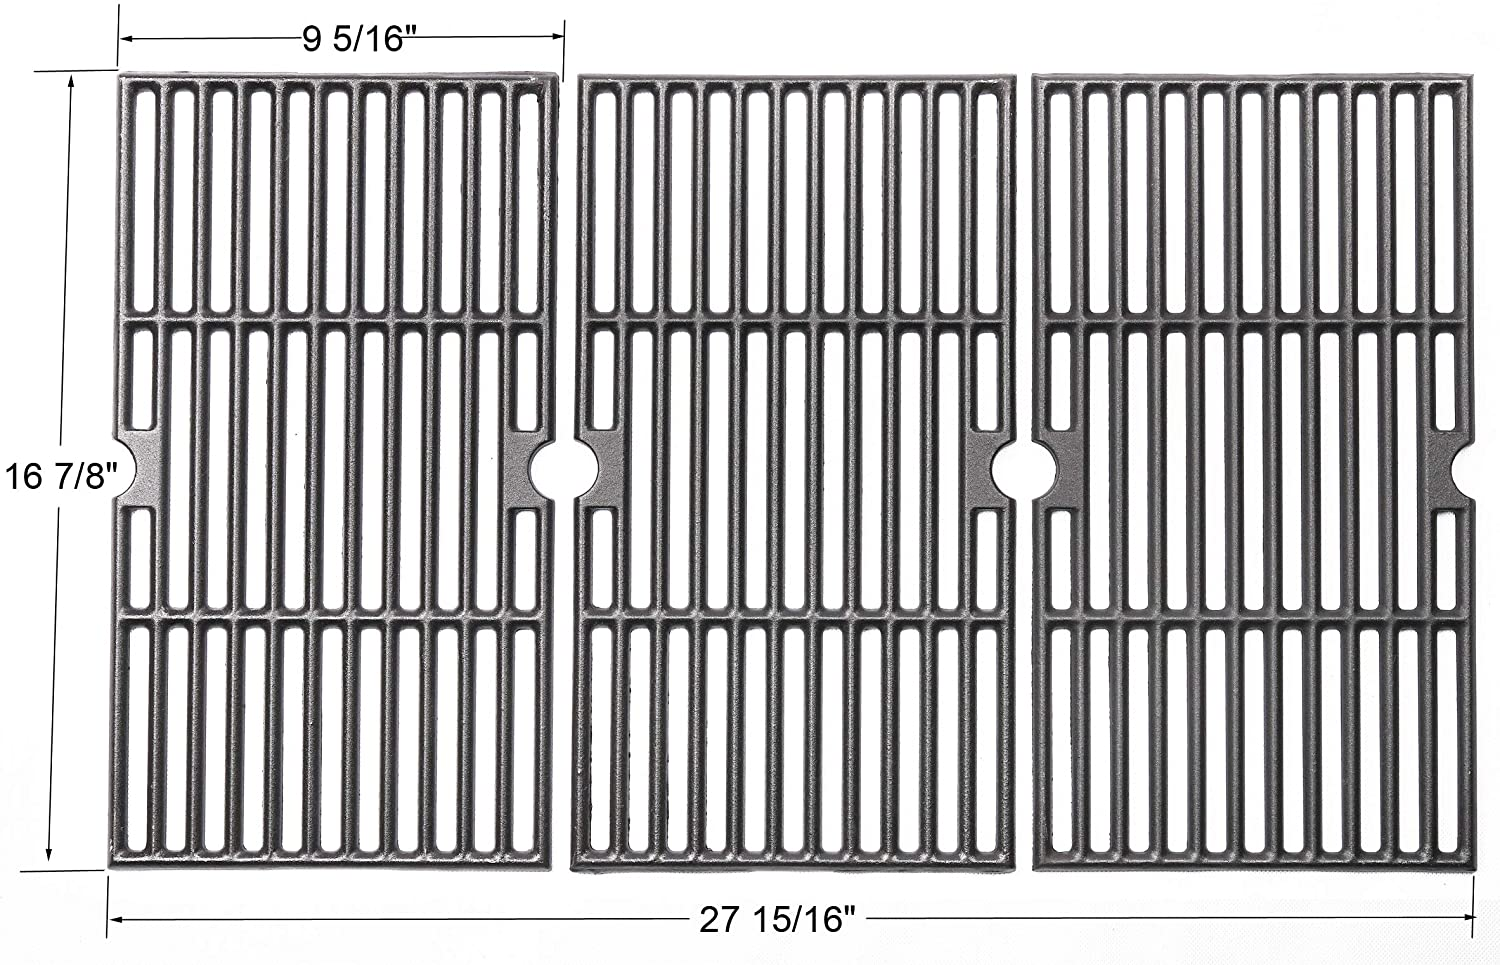 Gi8763 Porcelain Coated Cast Iron Cooking Grid Replacement